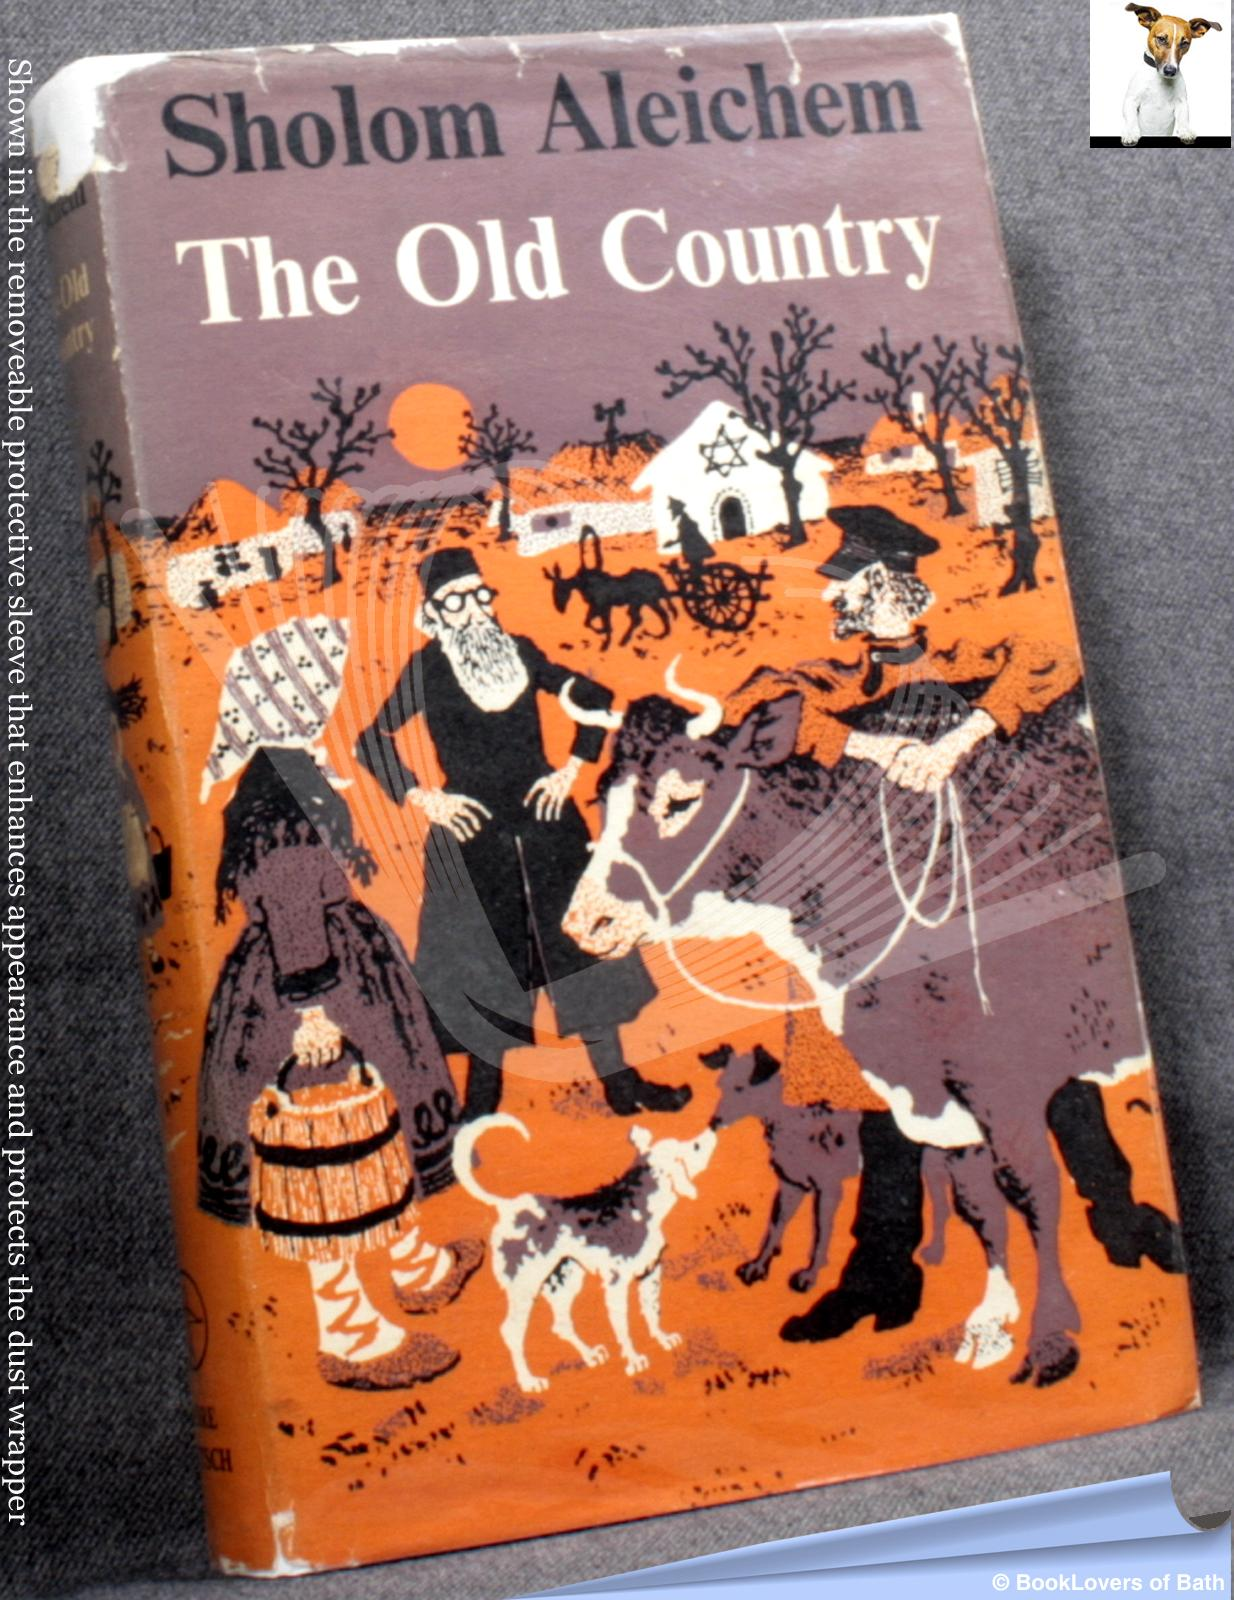 The Old Country - Sholom Aleichem